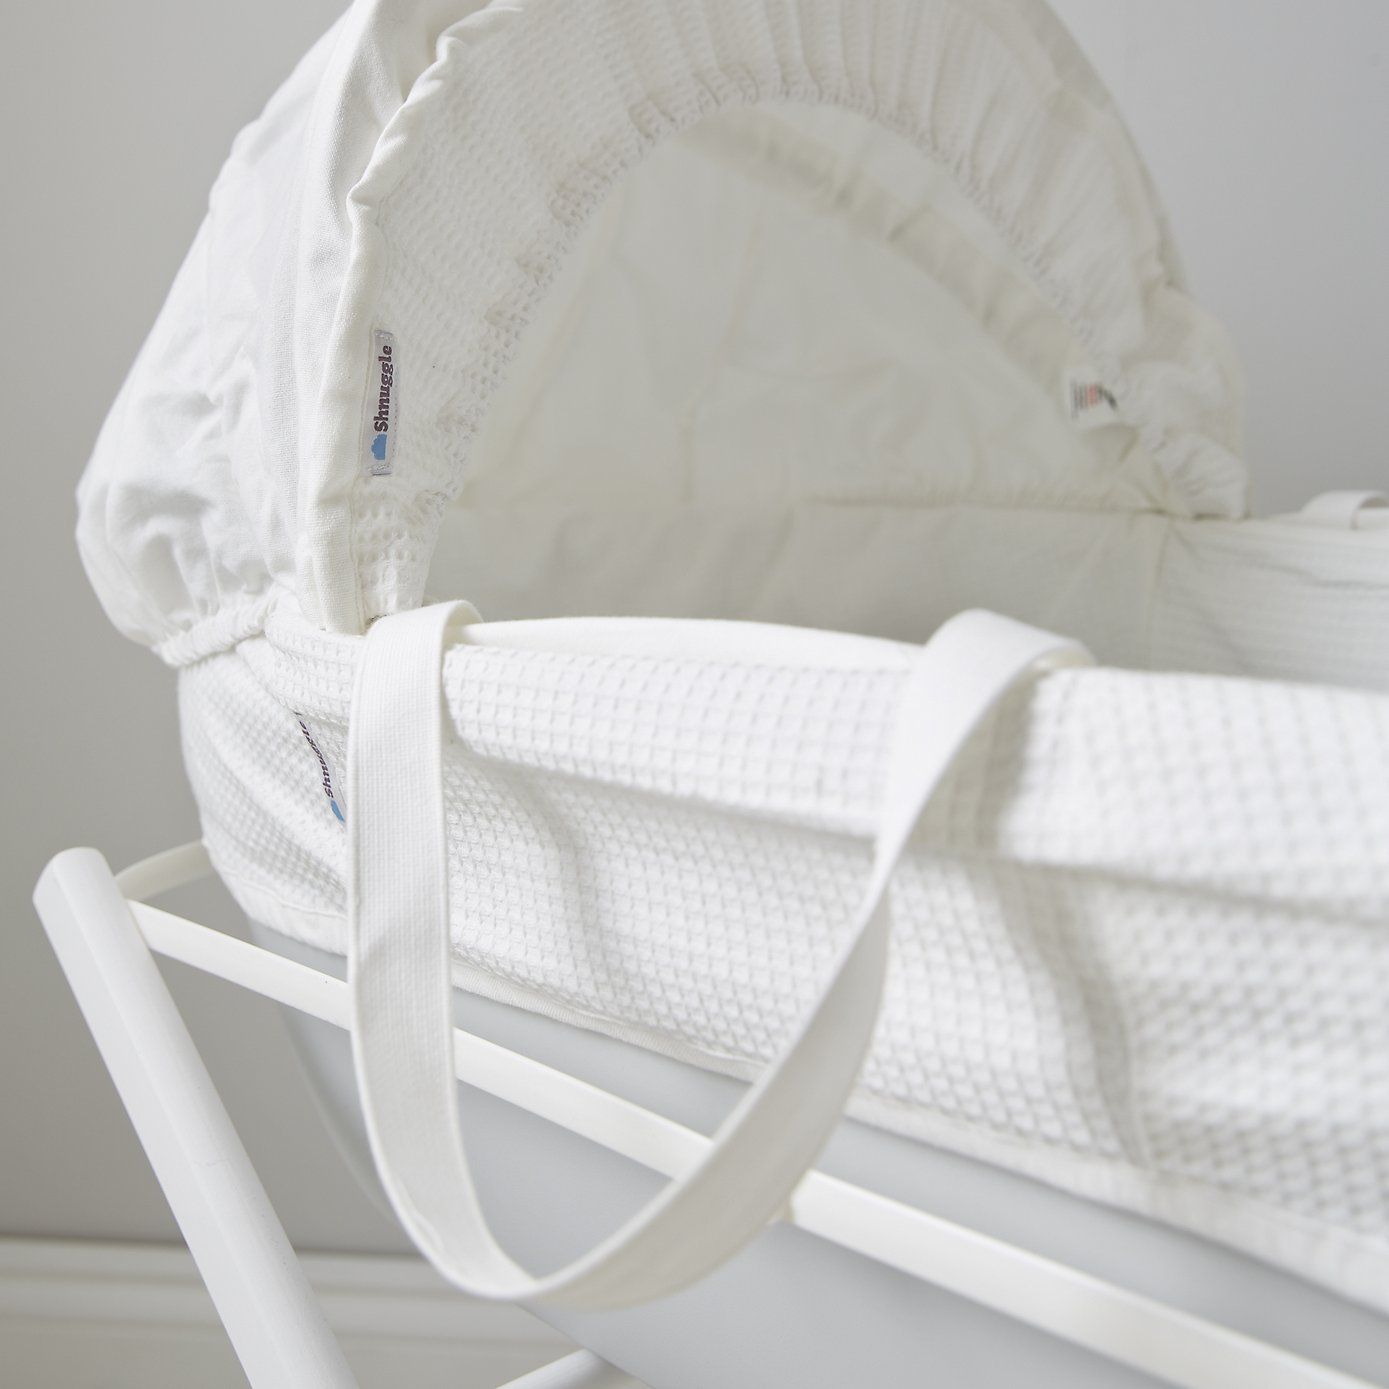 Shnuggle Moses Basket Baby Hangers Baby Hangers The White